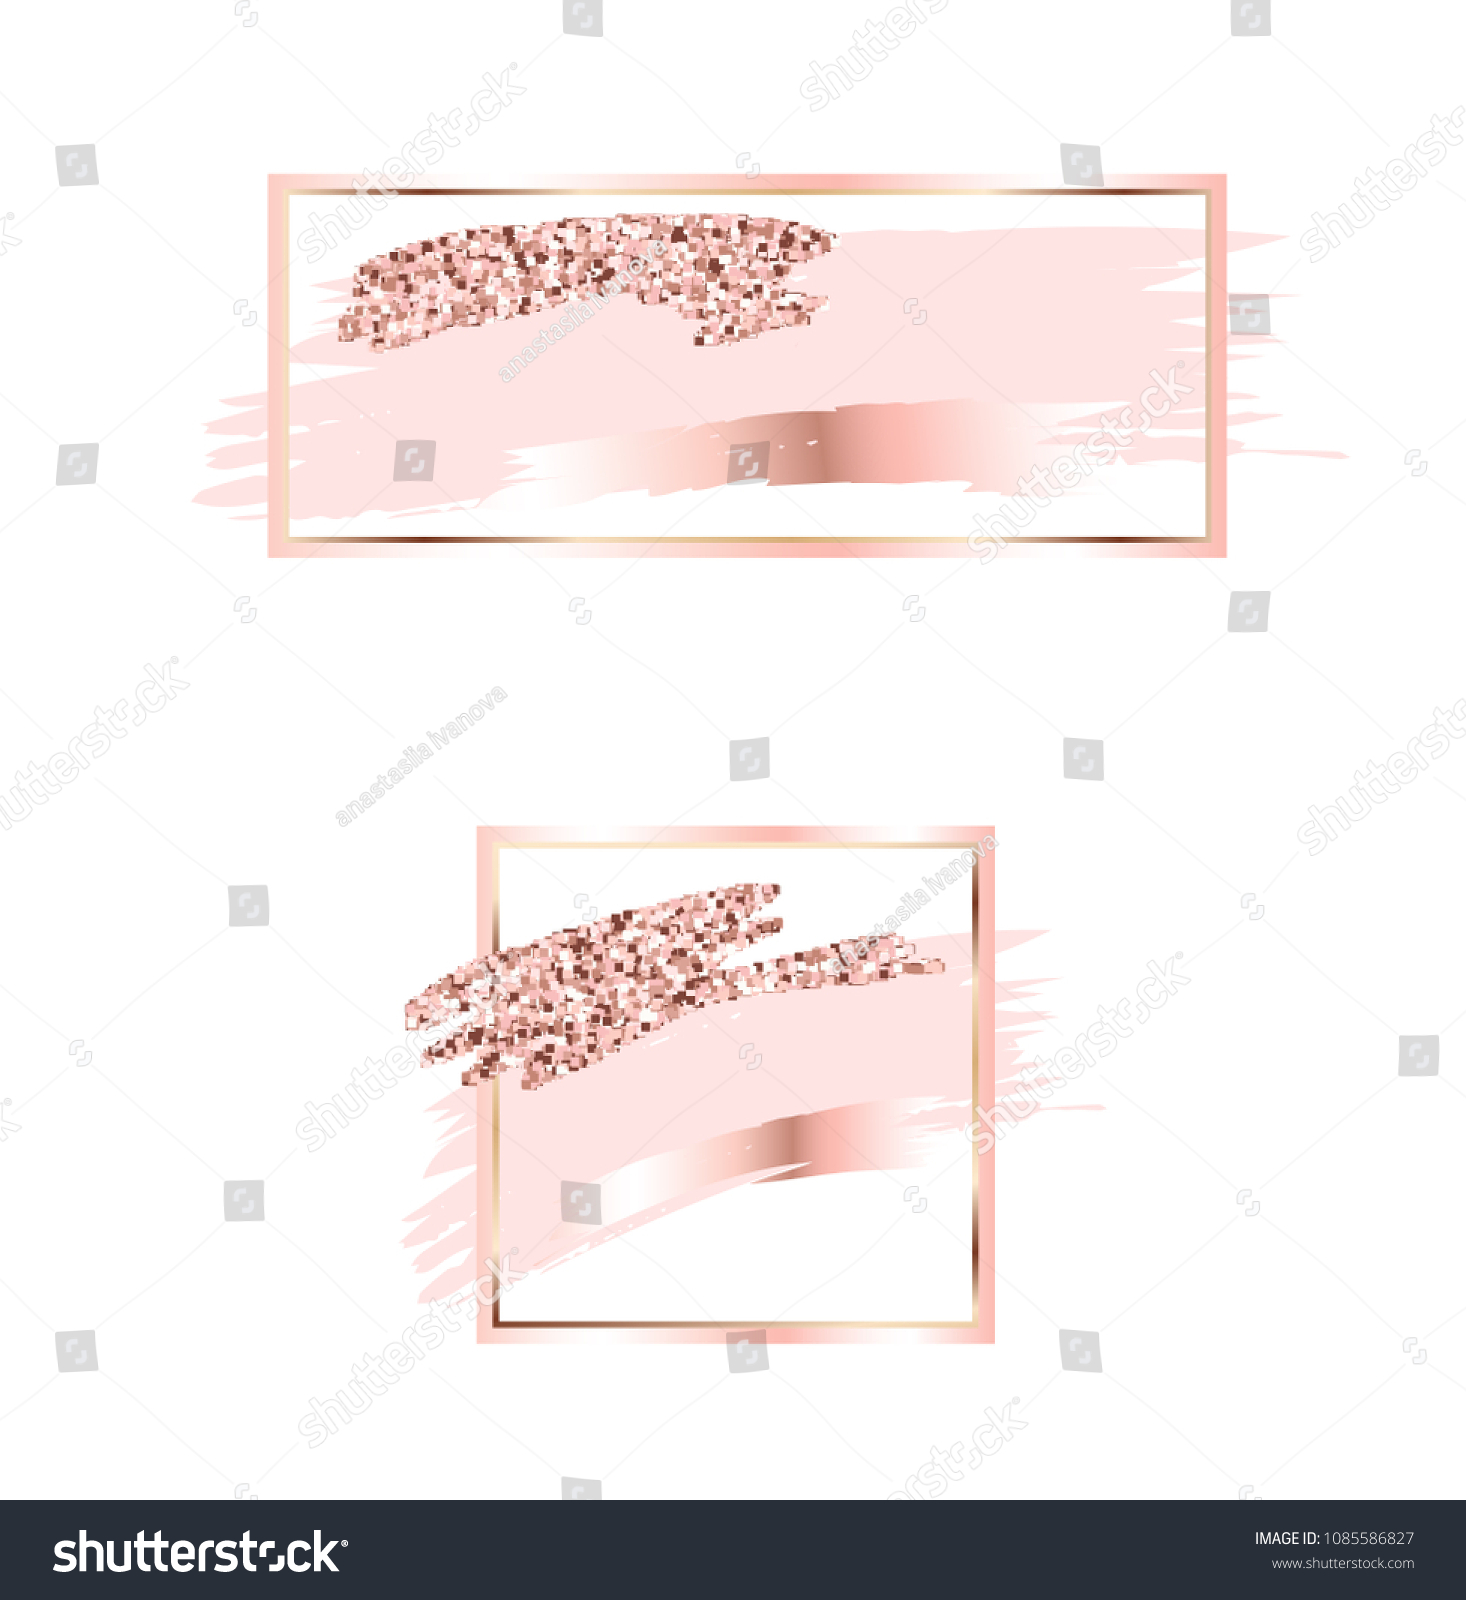 2f4e13a9138d Brush strokes in gentle pink tones.Gentle pastel color.Rose gold frame  circle and hexagonal frame .Abstract vector background.Pink sparkle glossy  scribble